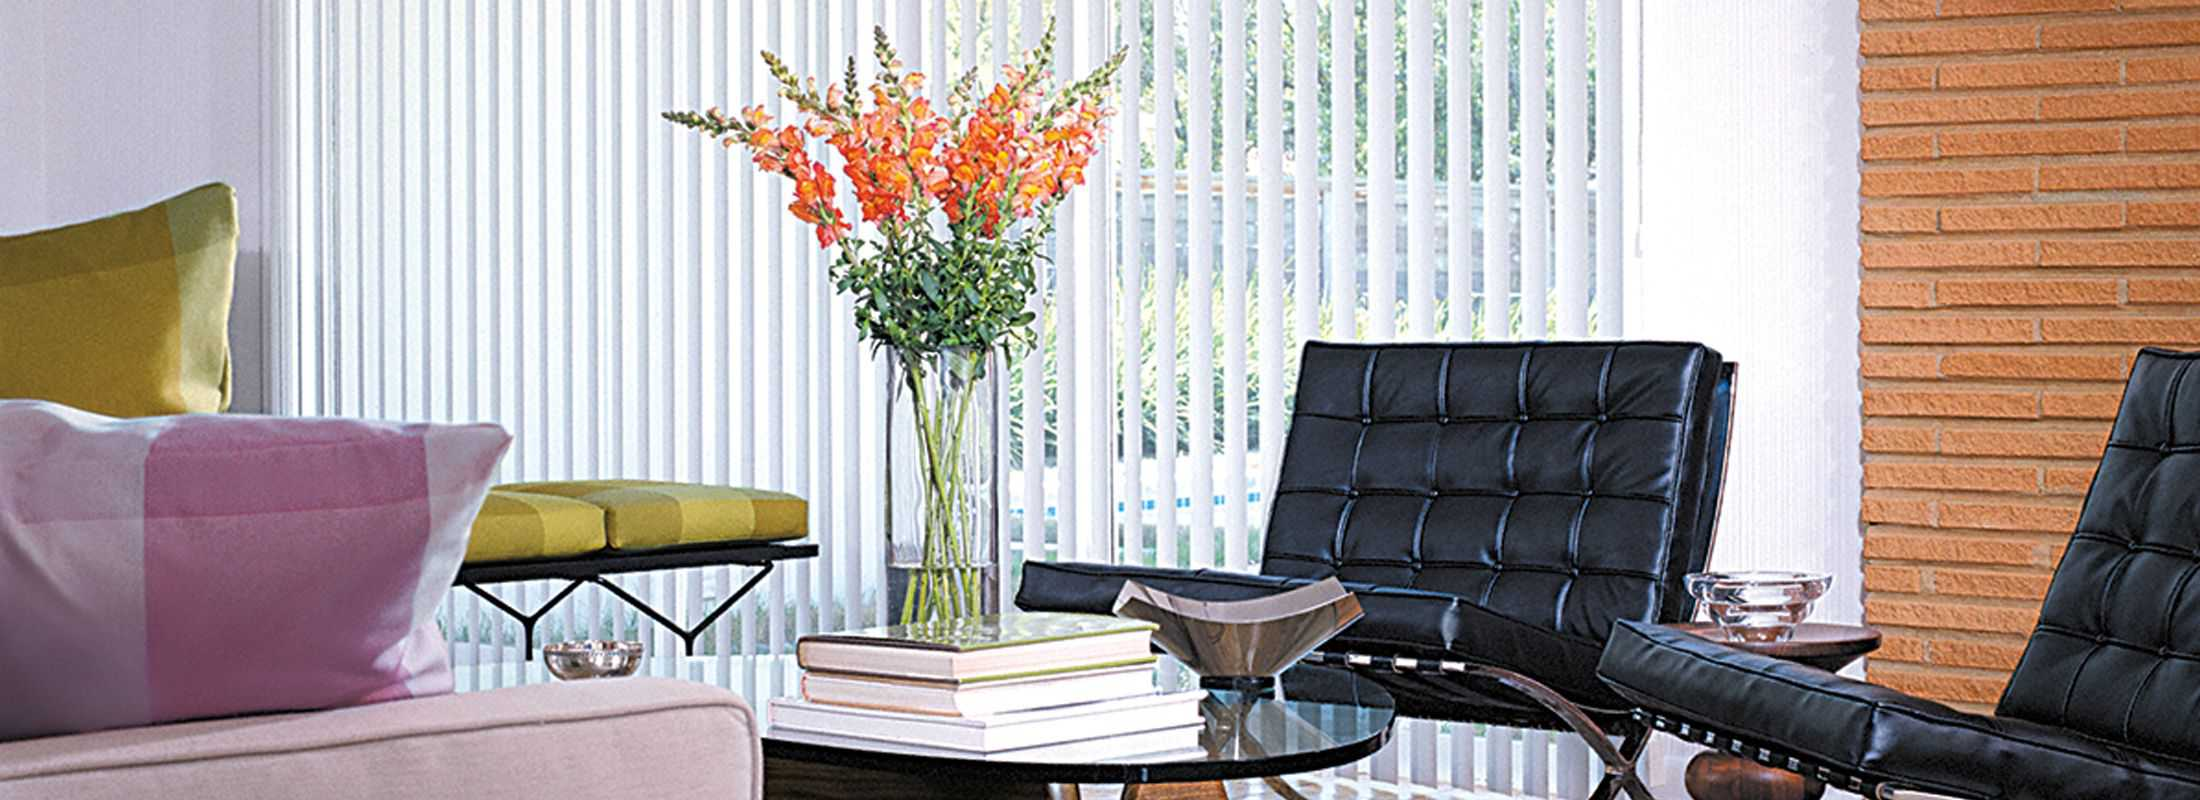 economical-vertical-blinds-vertical-solutions-carousel-01_0